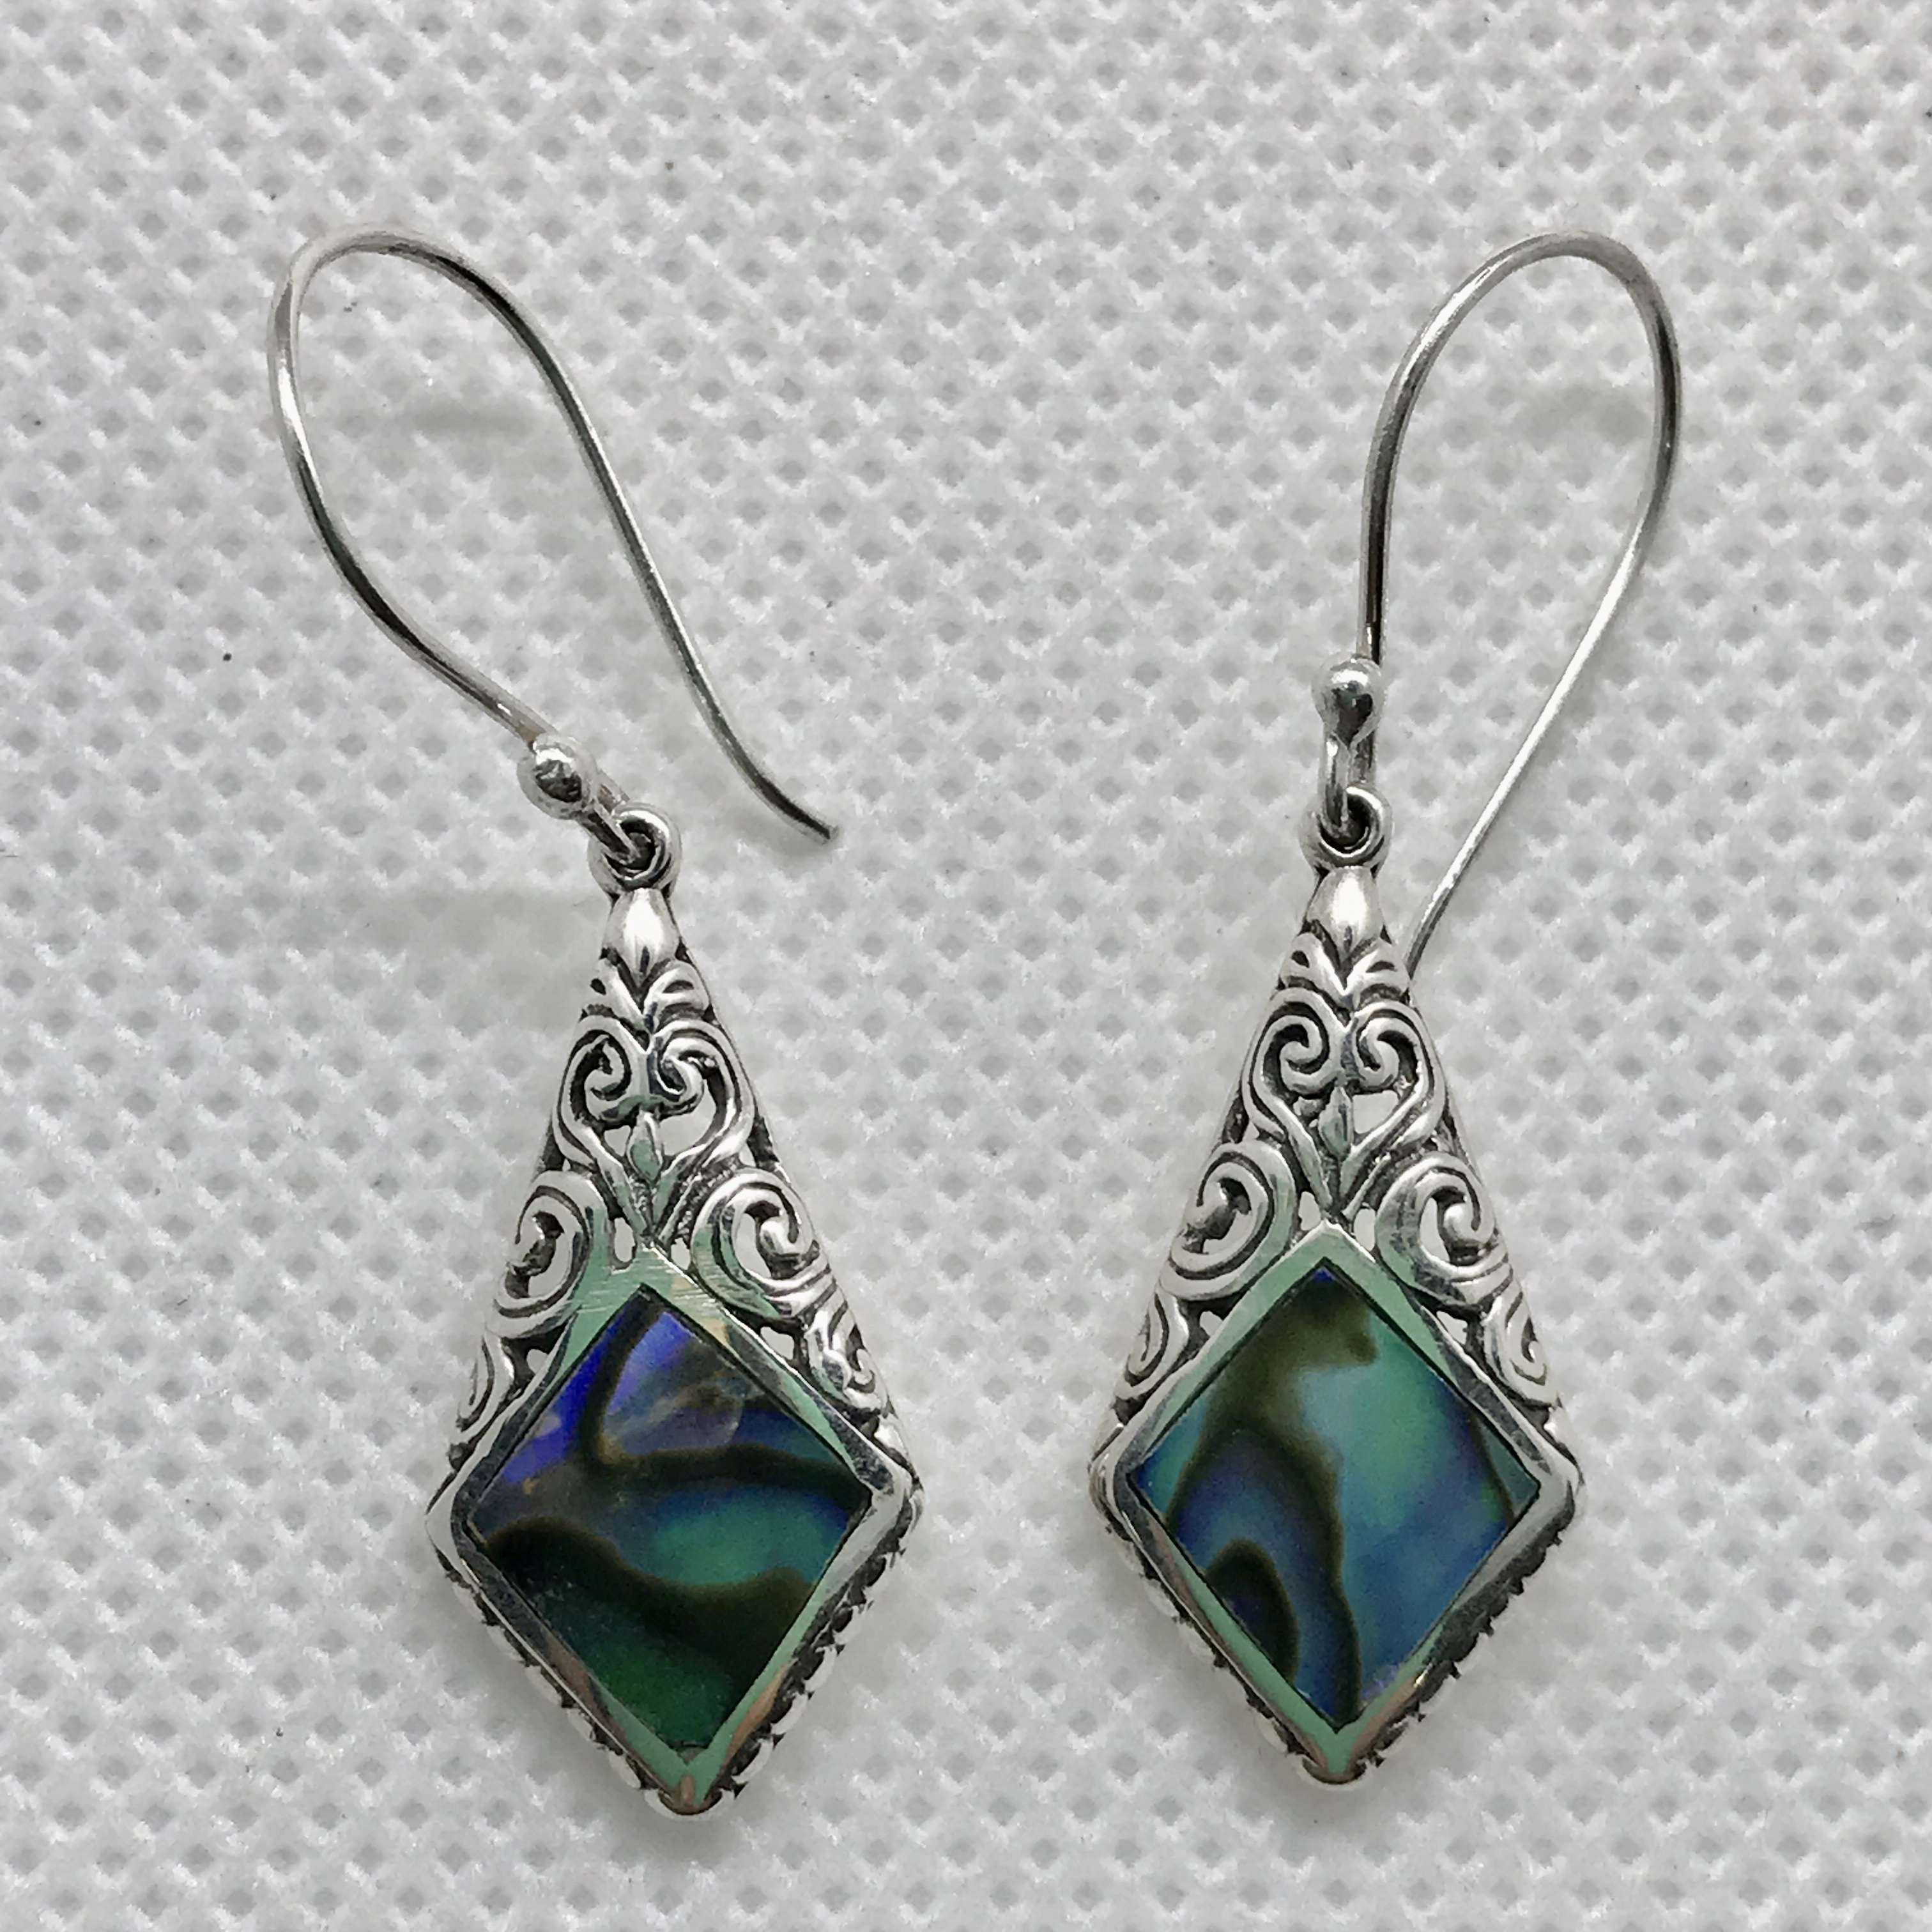 (UNIQUE 925 BALI SILVER EARRINGS WITH ABALONE)